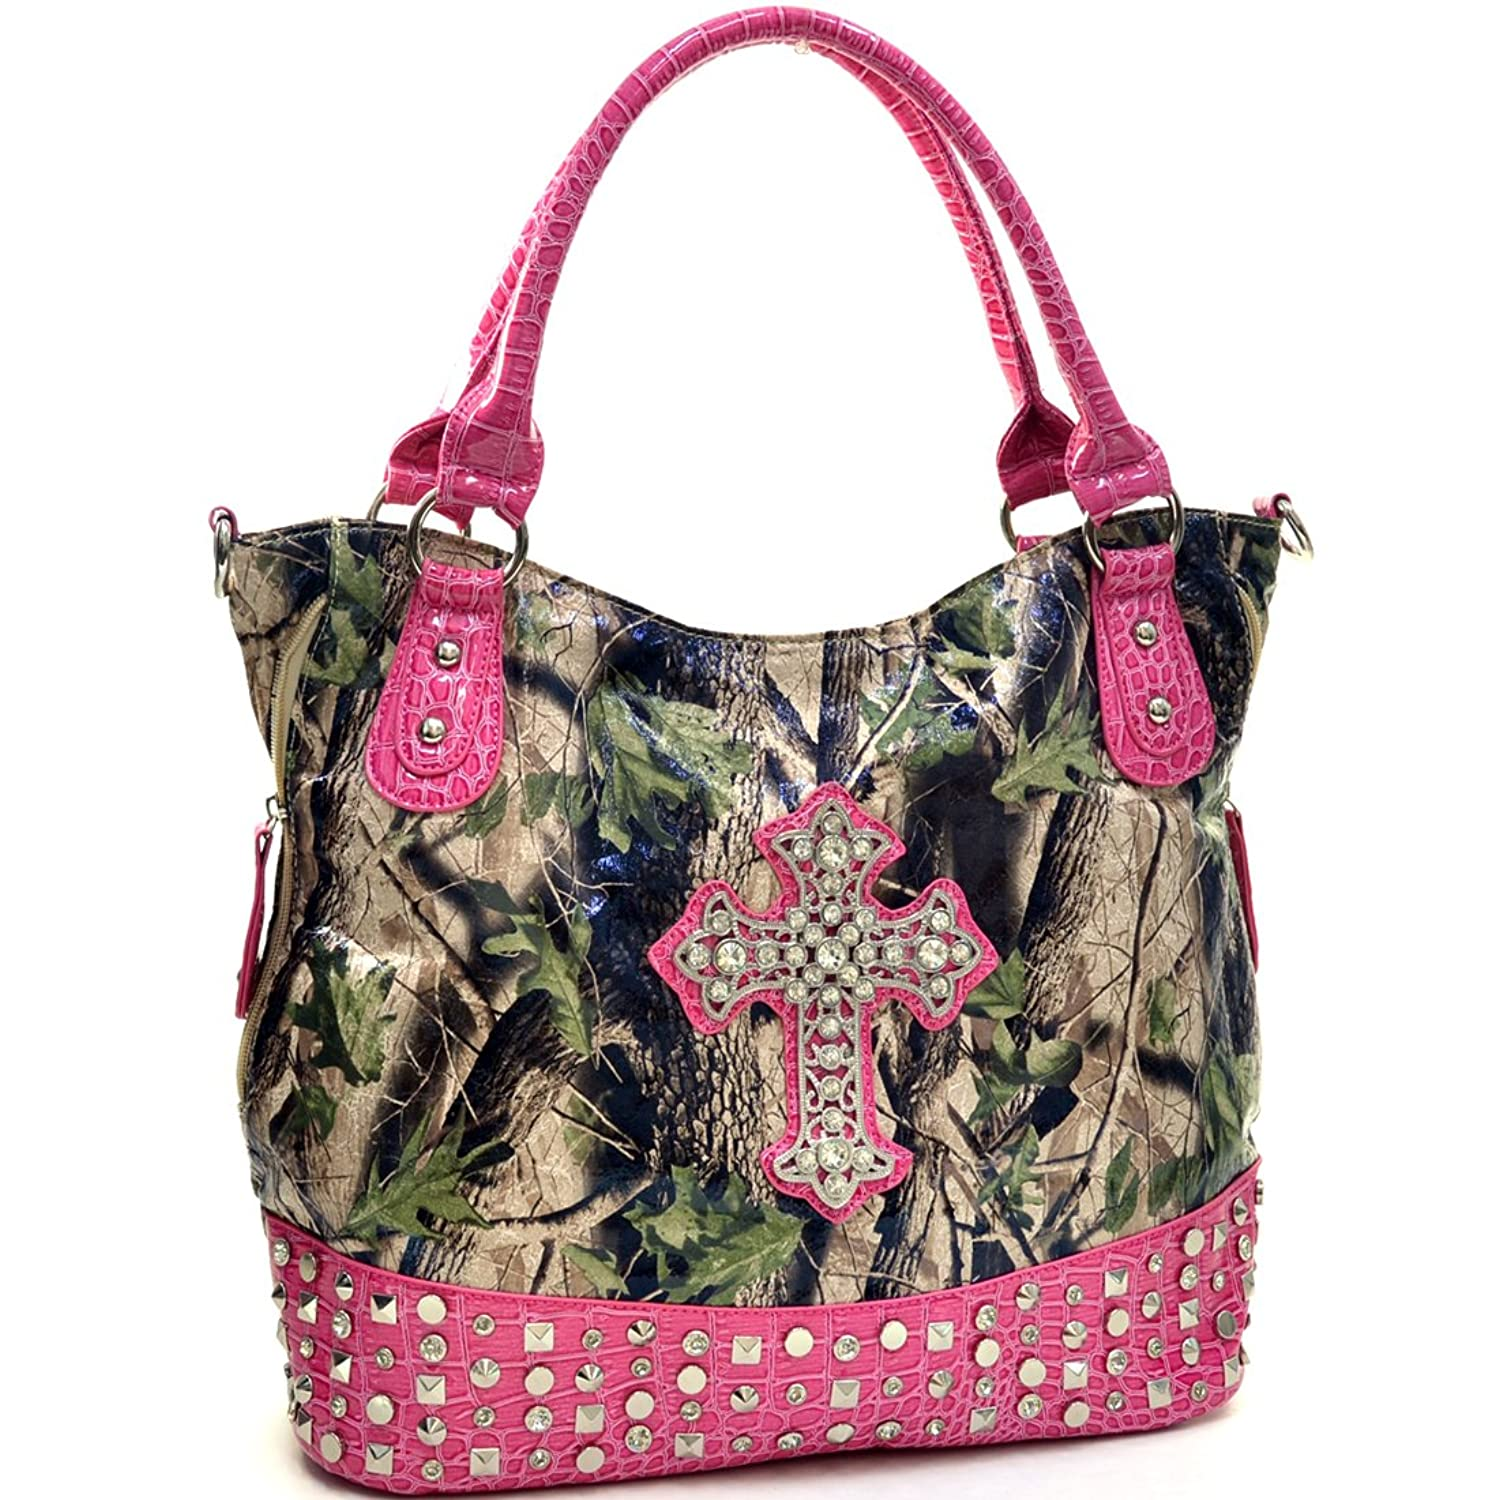 Western Faux Patent Leather Camouflage Shoulder Bag, Handbag, Tote with Rhinestone Cross and Pyramid Studded Accent